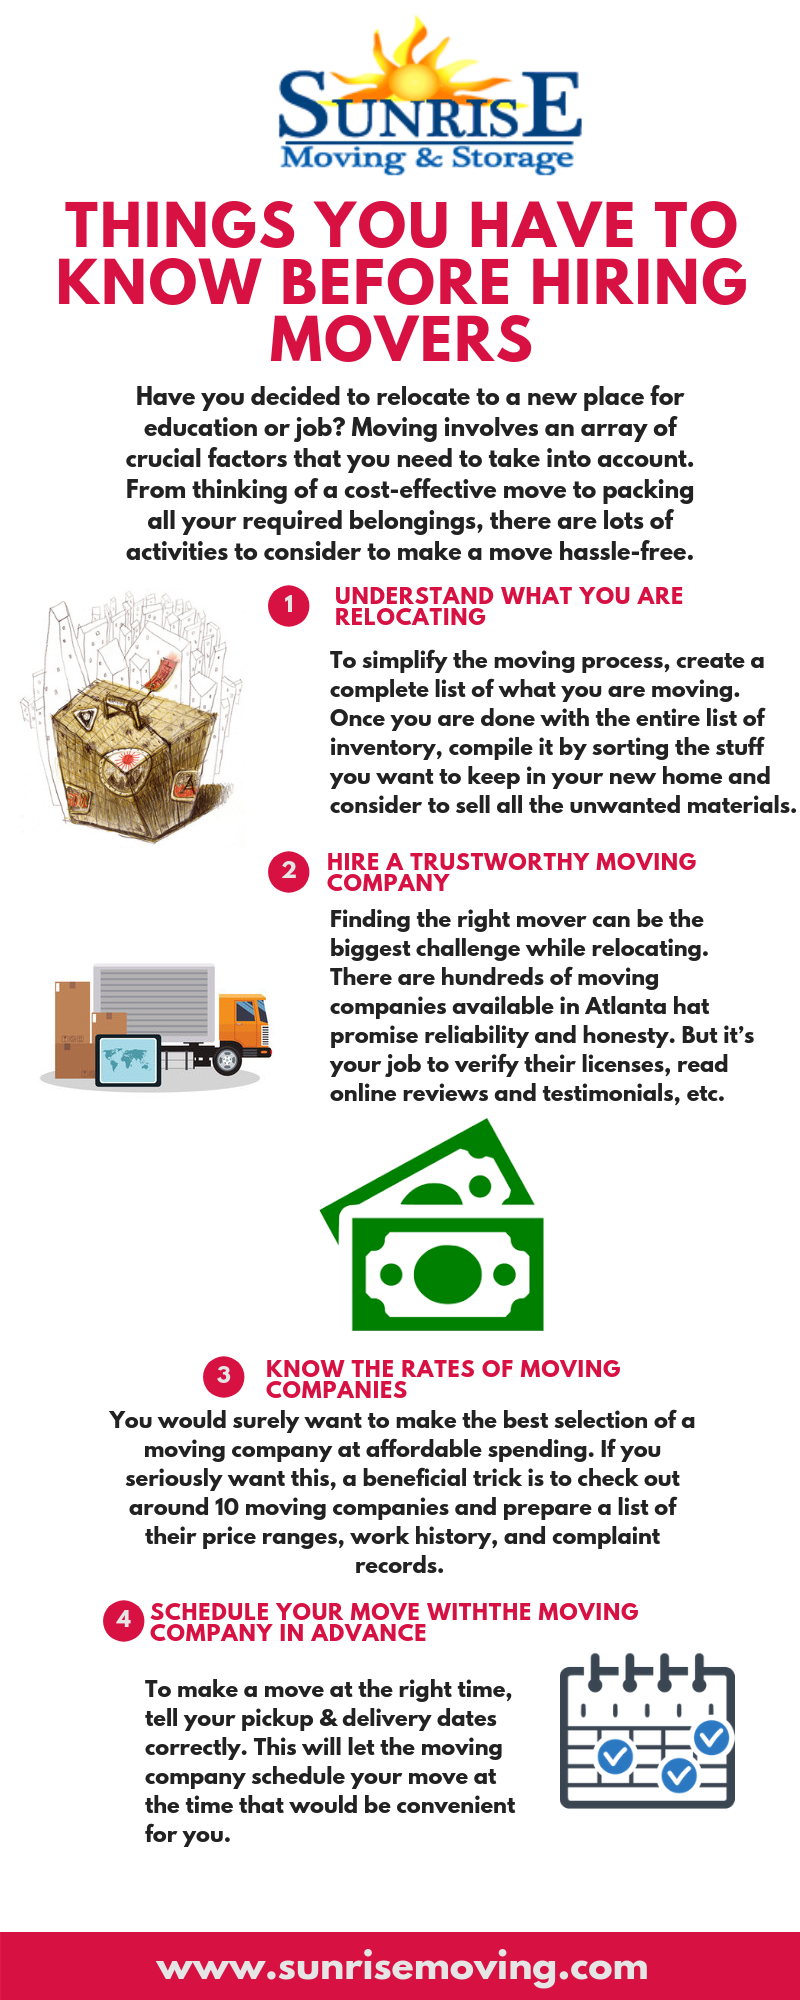 Before Hiring Movers Https Sunrisemoving Com The Things You Have To Know Before Hiring Movers 1 Understan Hiring Movers Moving And Storage Atlanta Movers